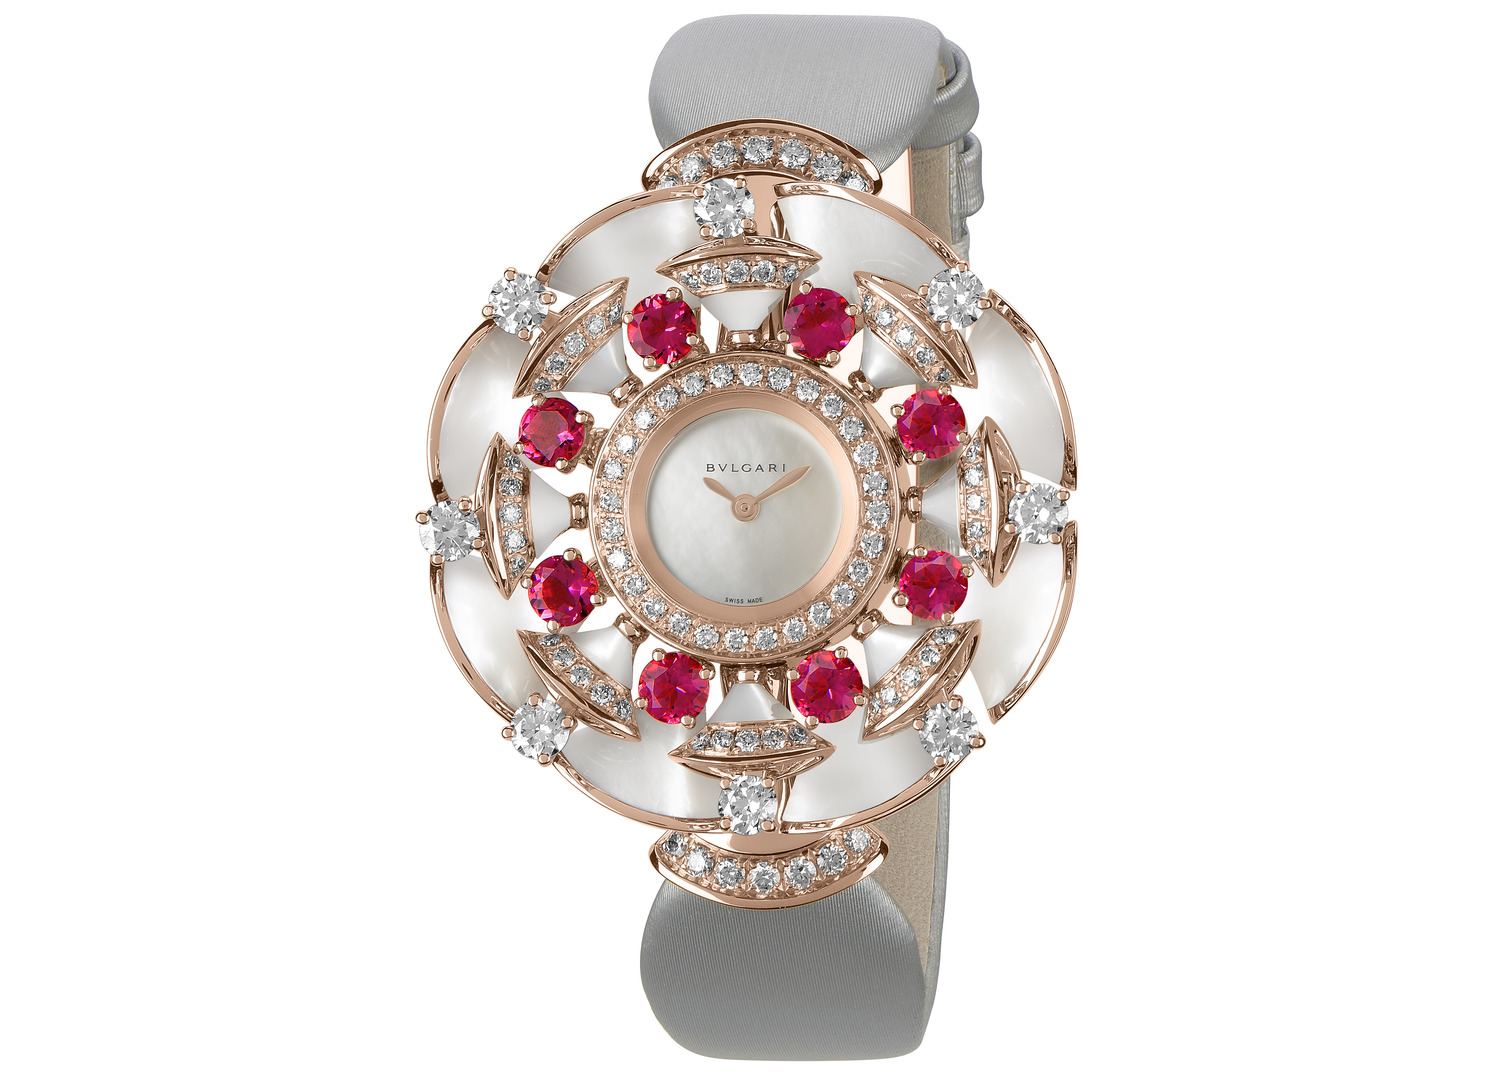 BVLGARI DIVAS' DREAM watch